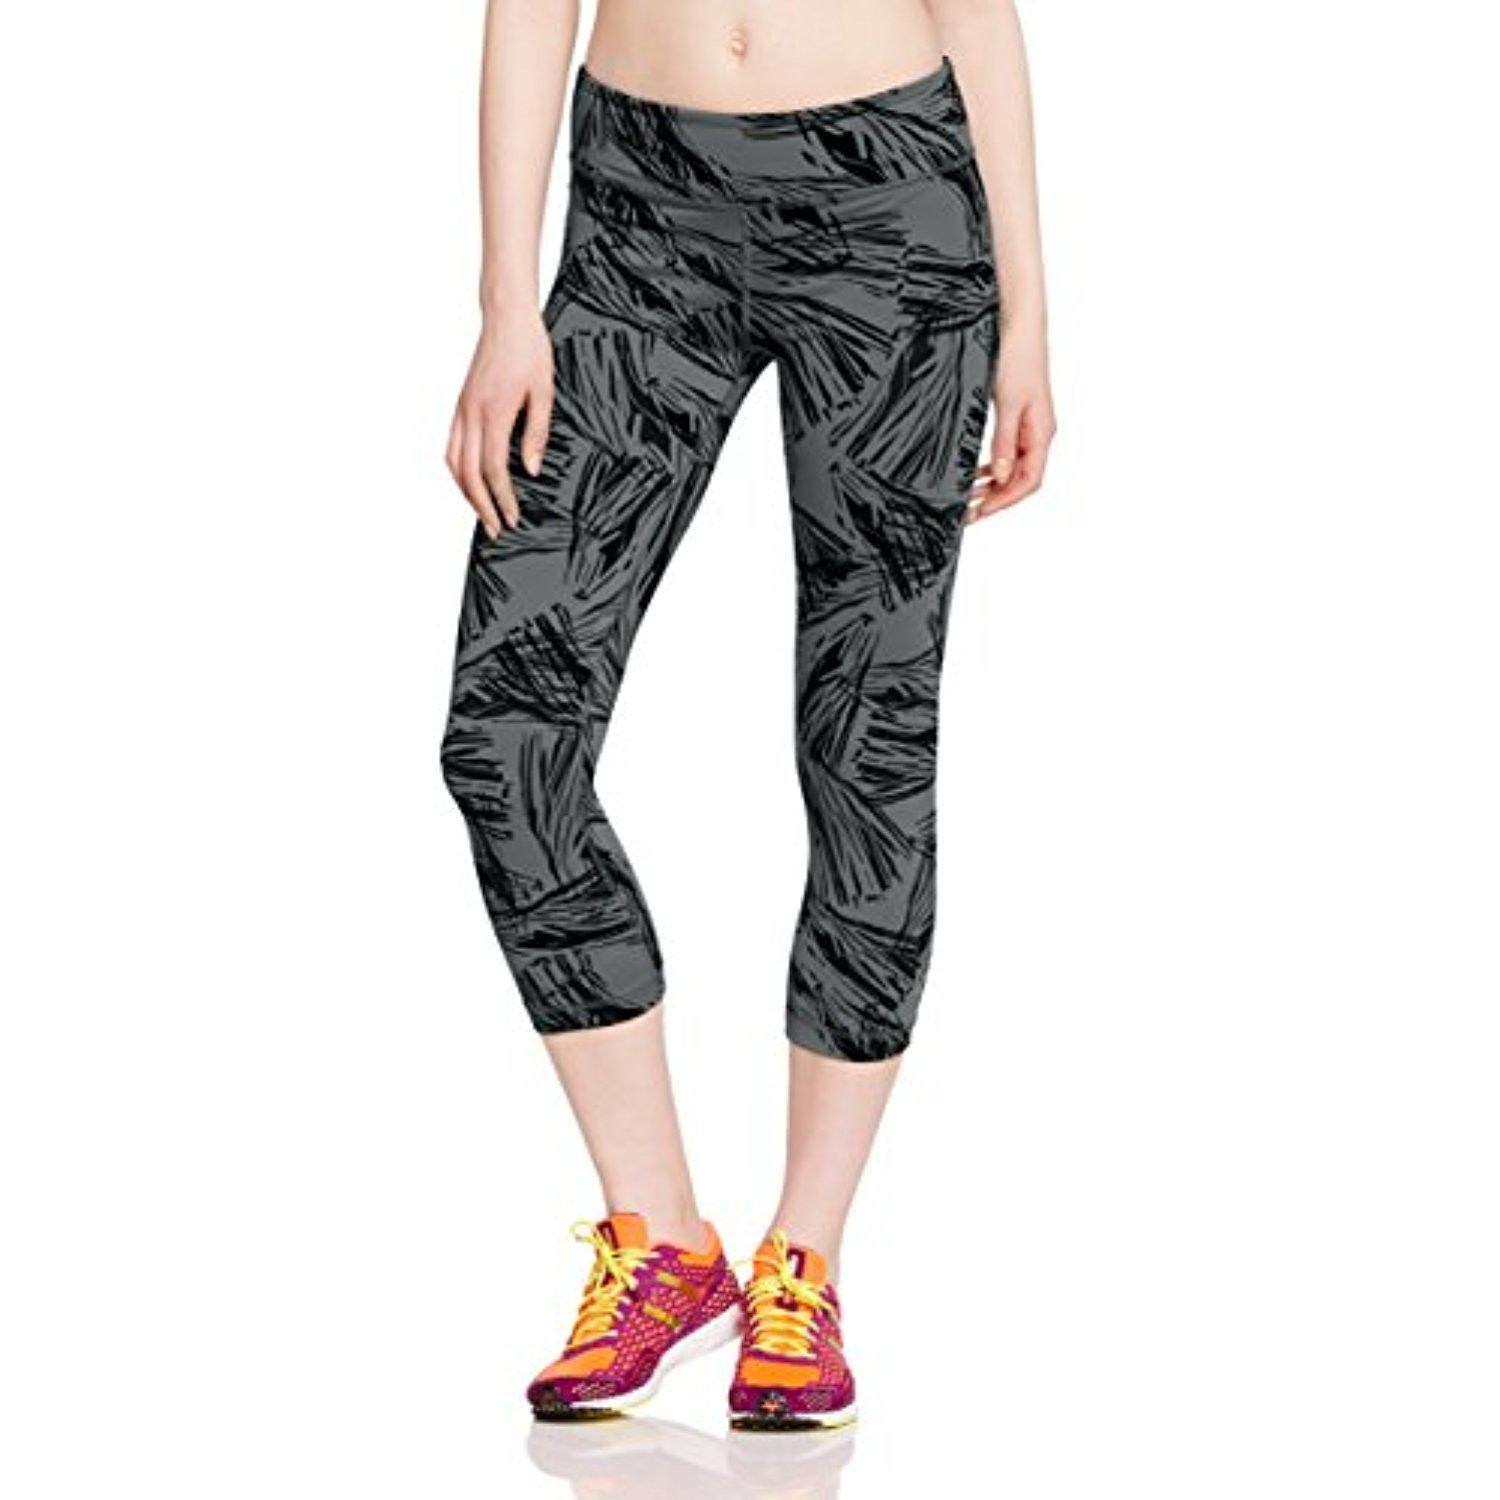 Letus tassel capri pants check out this great product this is